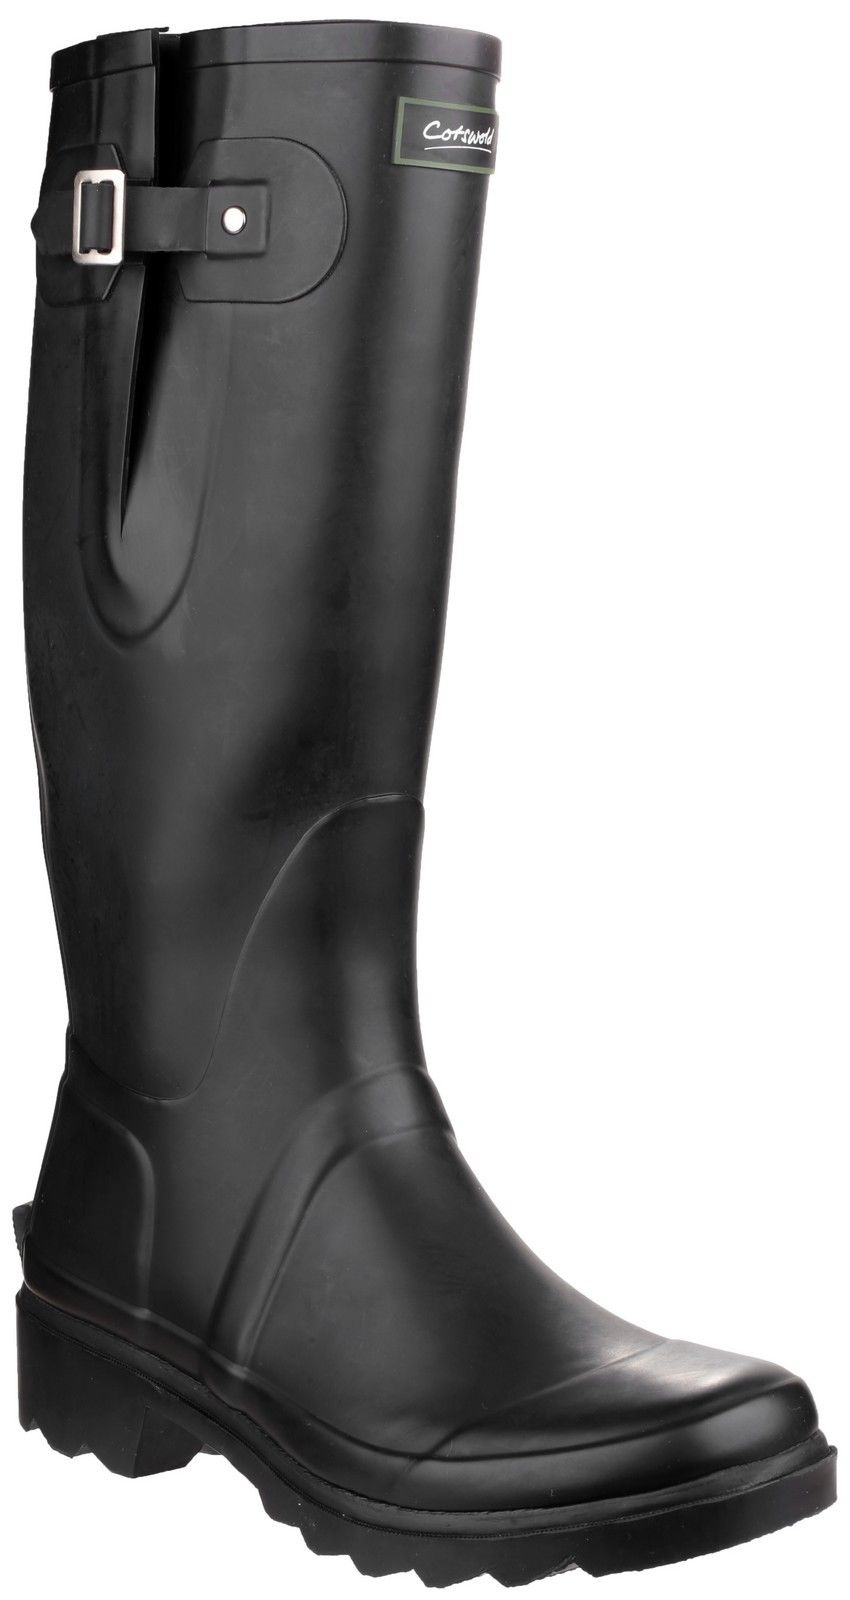 Cotswold Ragley waterproof schwarz or green unisex waterproof Ragley lightweight wellington boot 8692cc